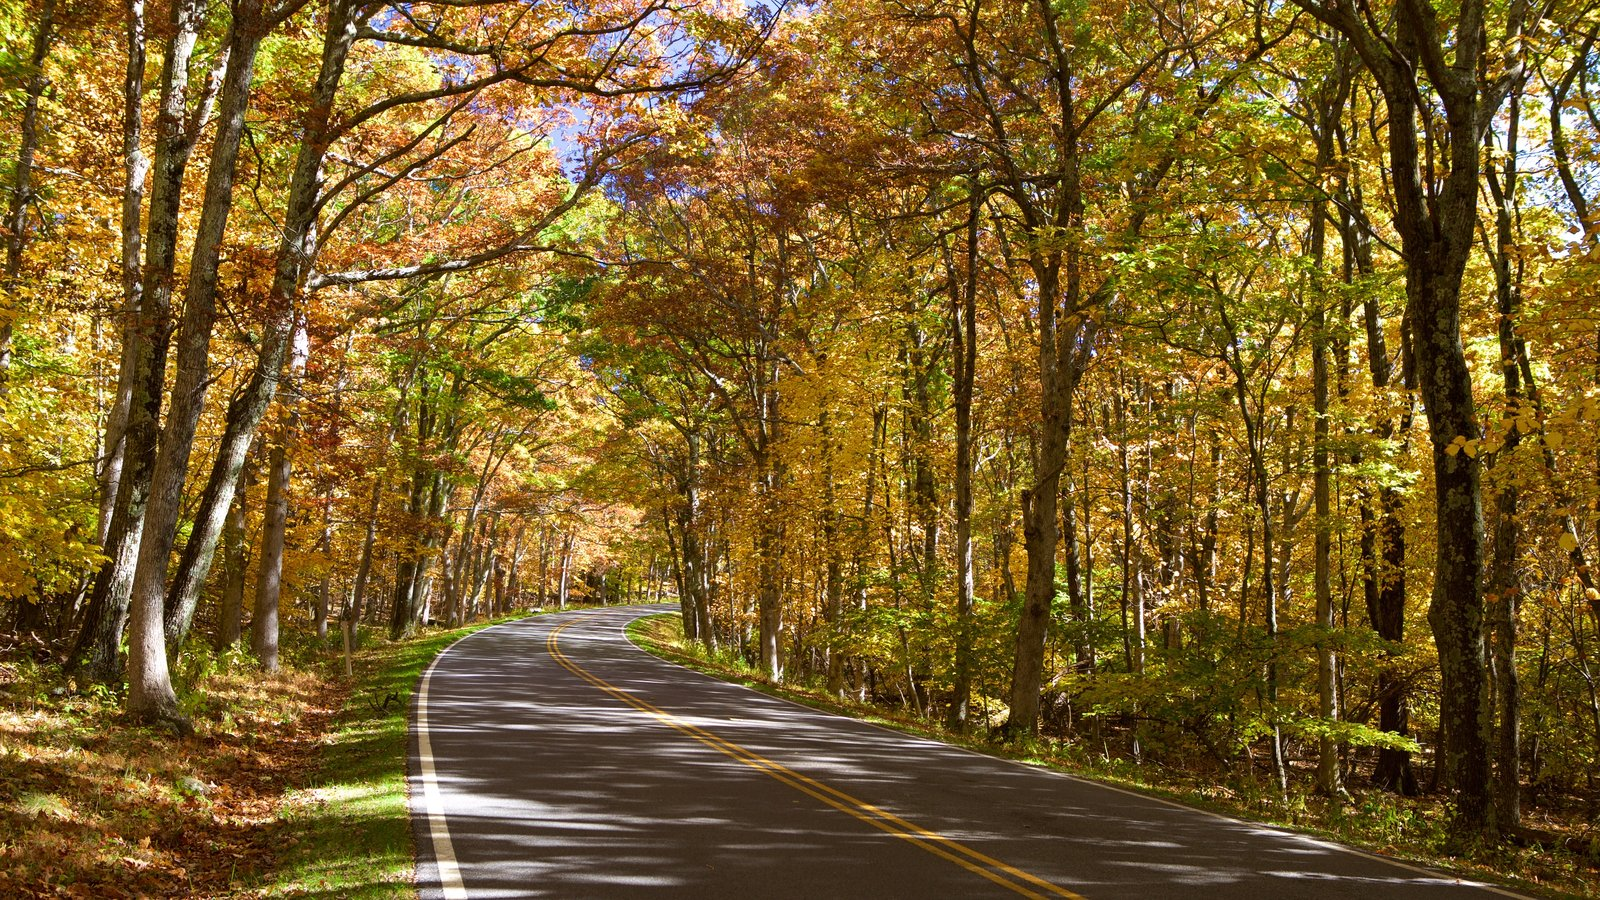 Shenandoah National Park featuring autumn leaves and forest scenes